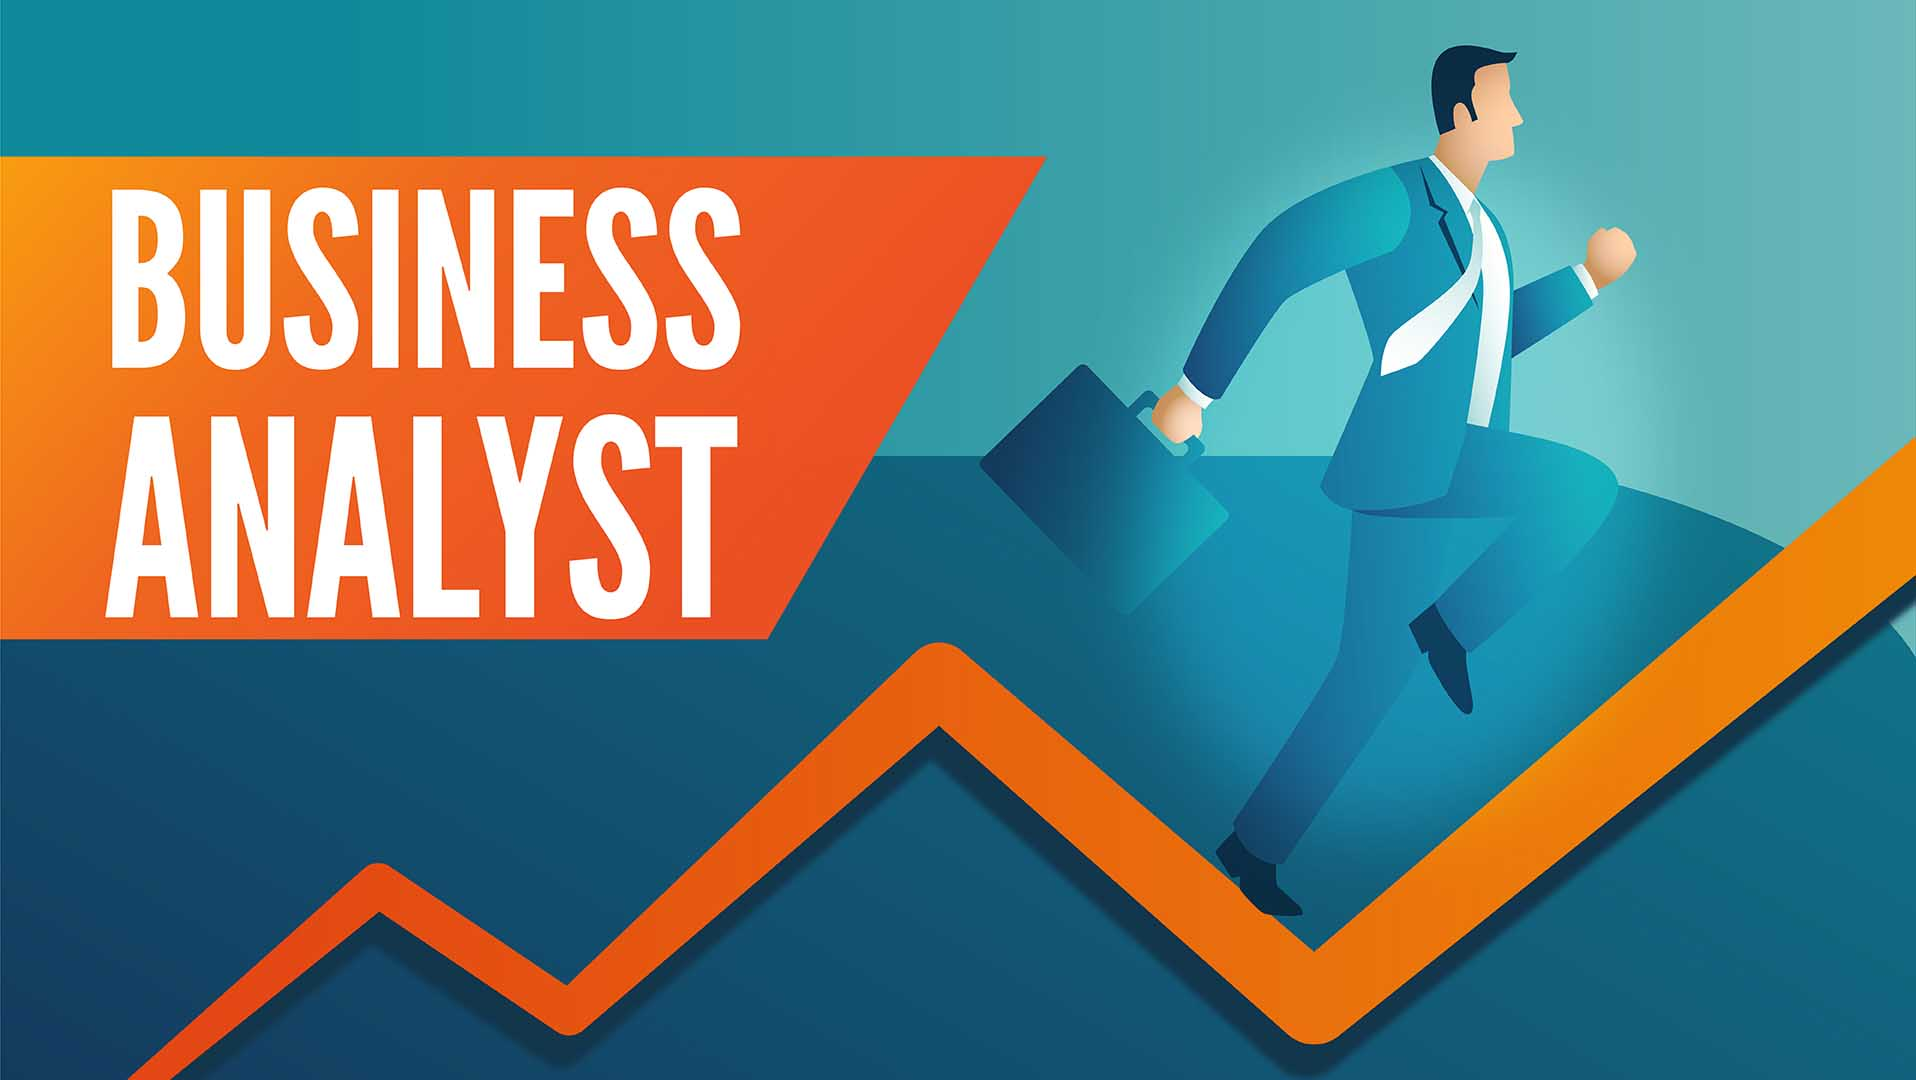 How to become business analyst